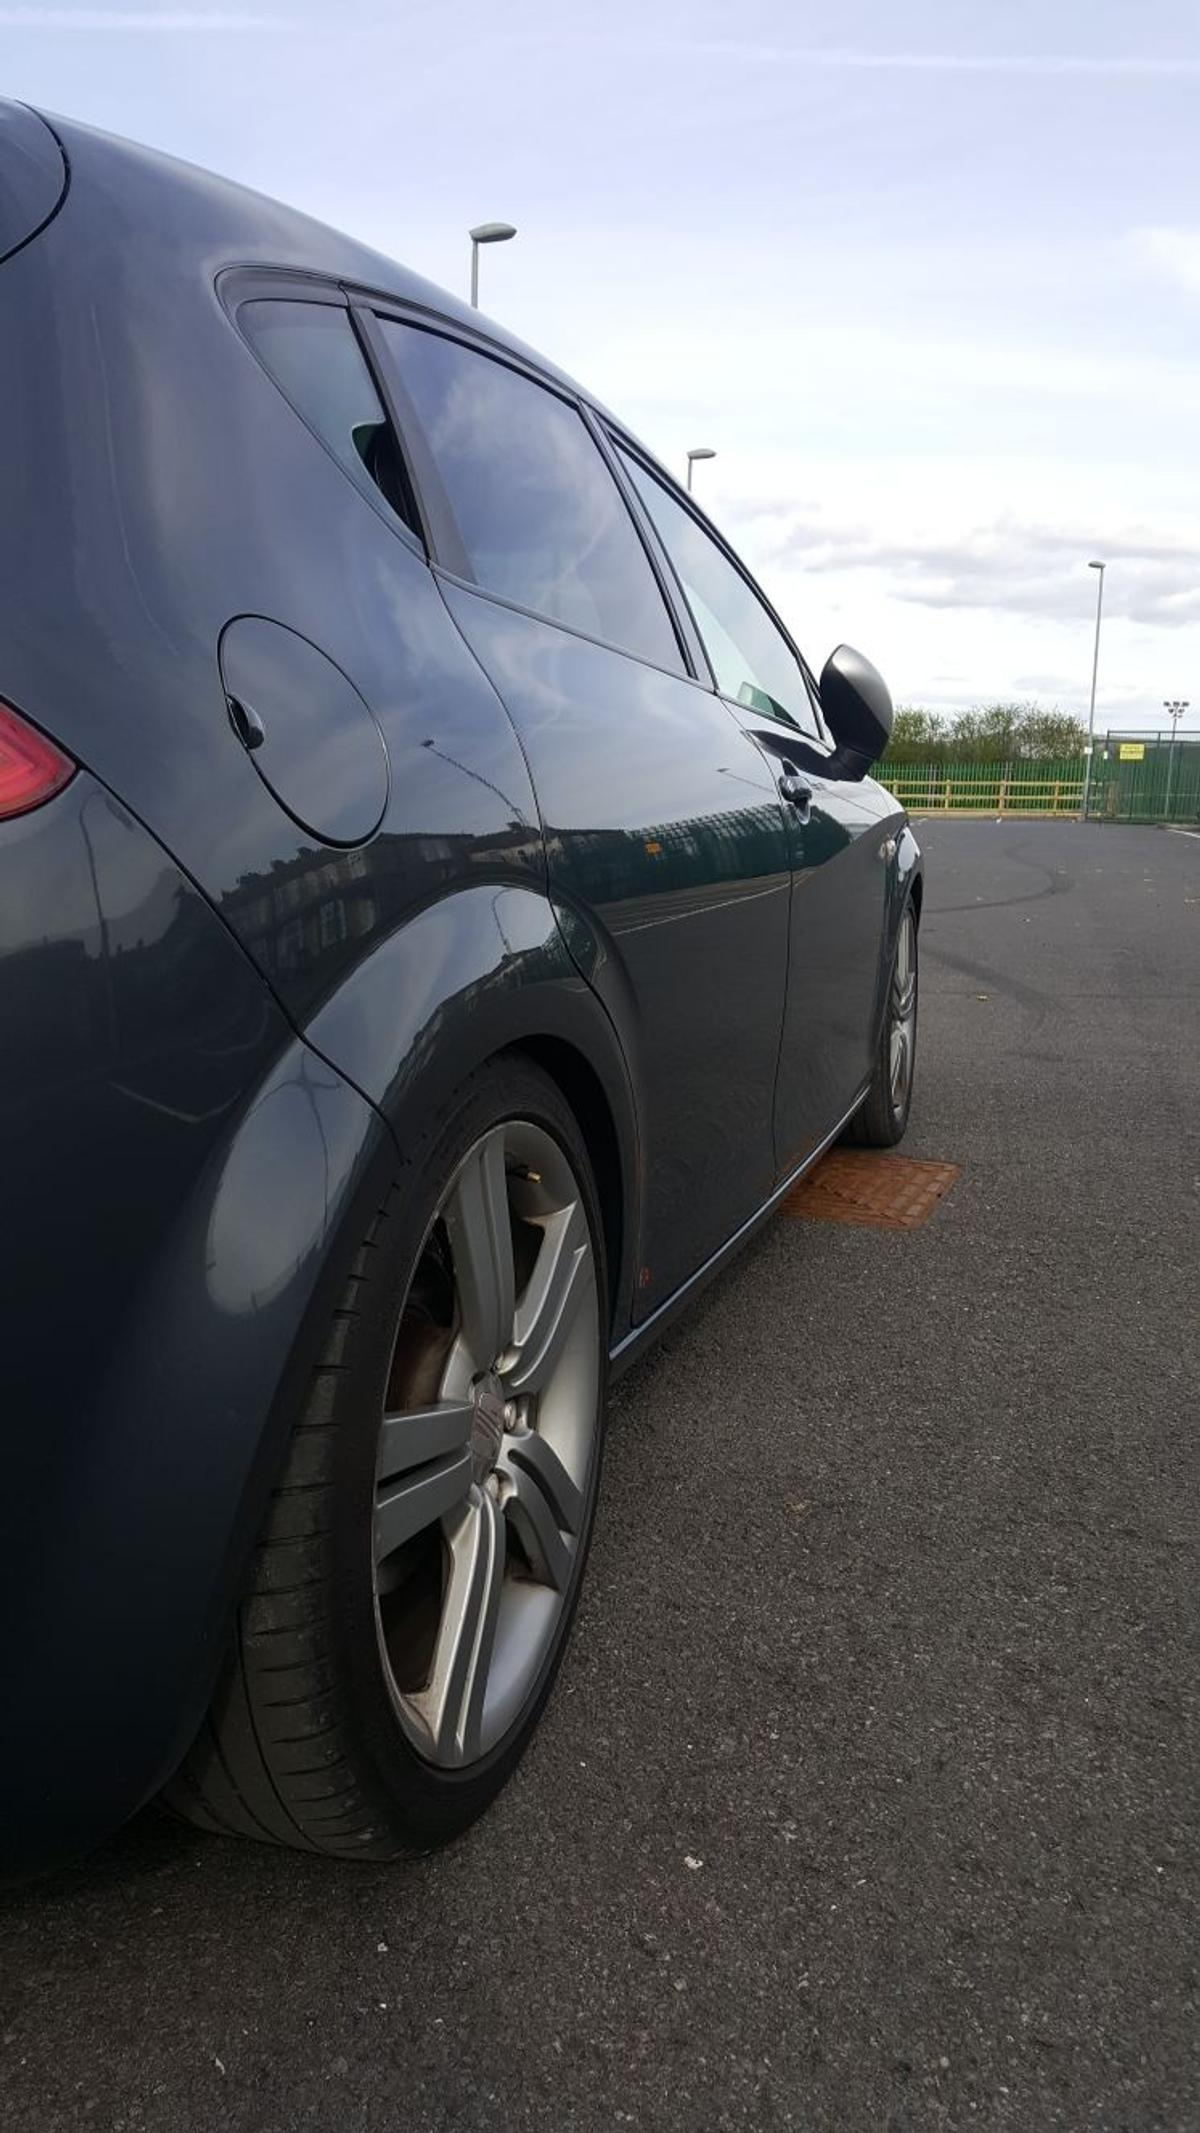 Seat leon FR TDI in BB10 Burnley for £2,795 00 for sale - Shpock